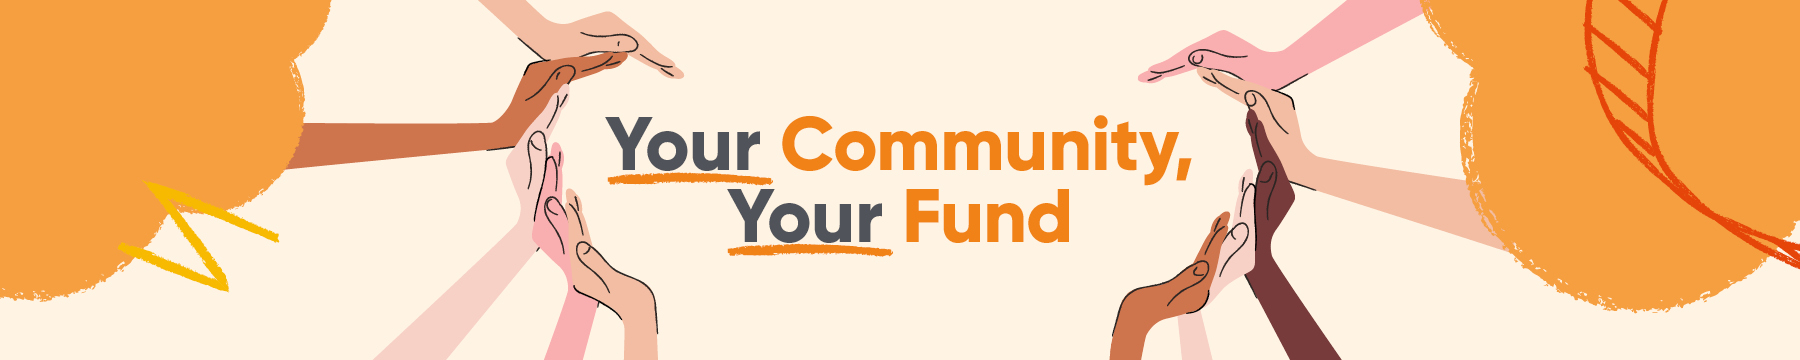 Your Community, Your Fund website banner